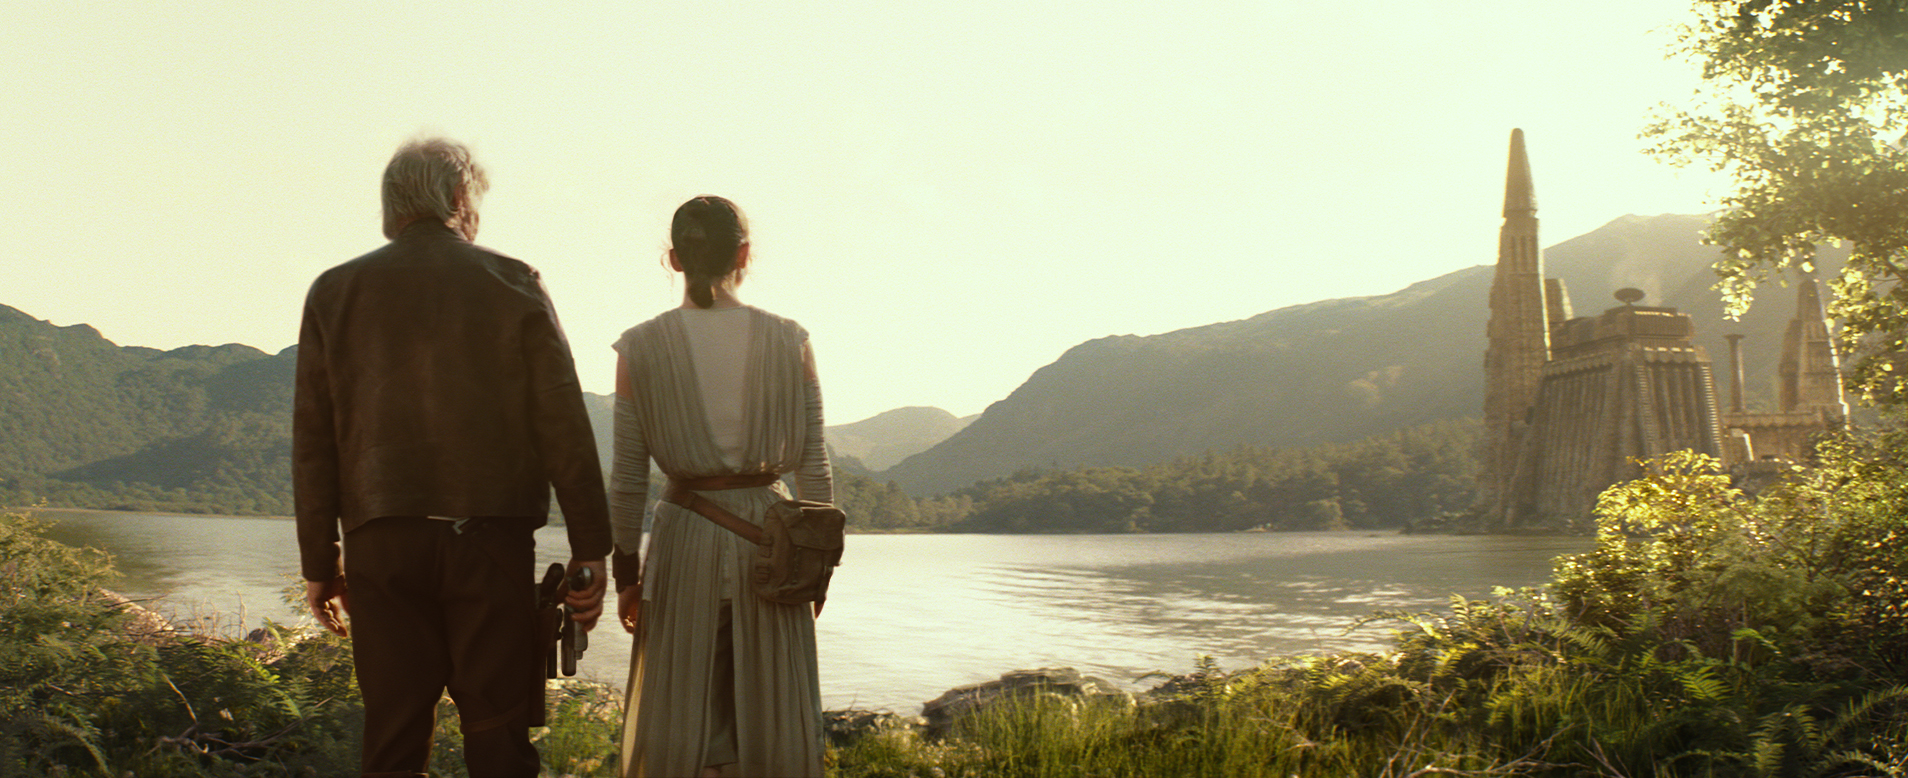 Star Wars: The Force Awakens..L to R: Han Solo (Harrison Ford) and Rey (Daisy Ridley) w/ Castle Takodana in background...Ph: Film Frame..? 2014 Lucasfilm Ltd. & TM. All Right Reserved..